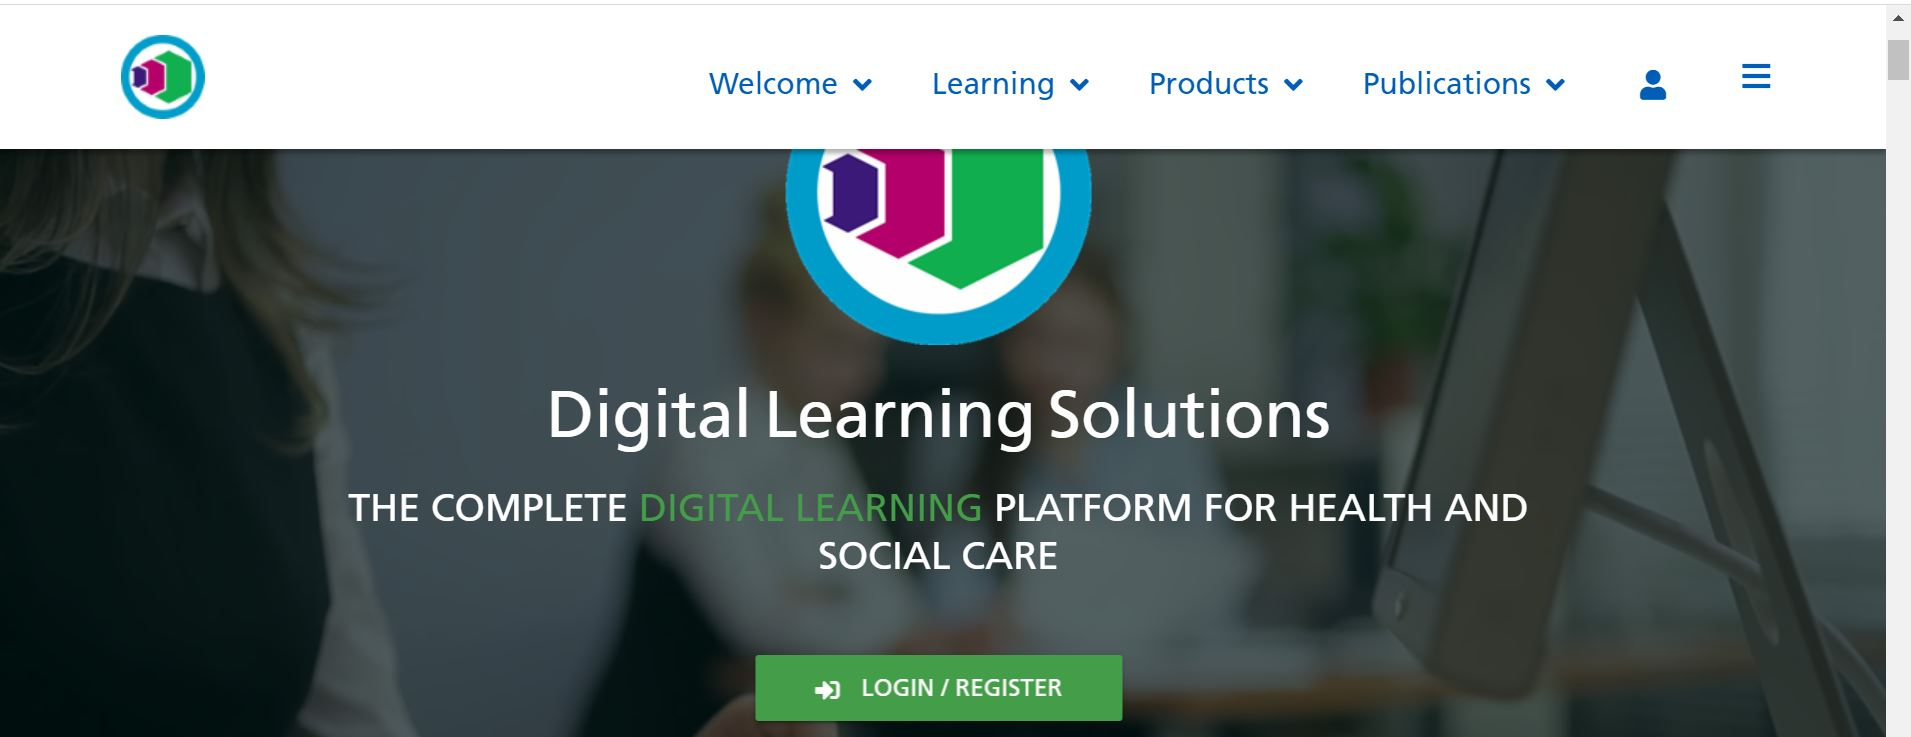 Digital Learning Solutions Logo and Log In Screen